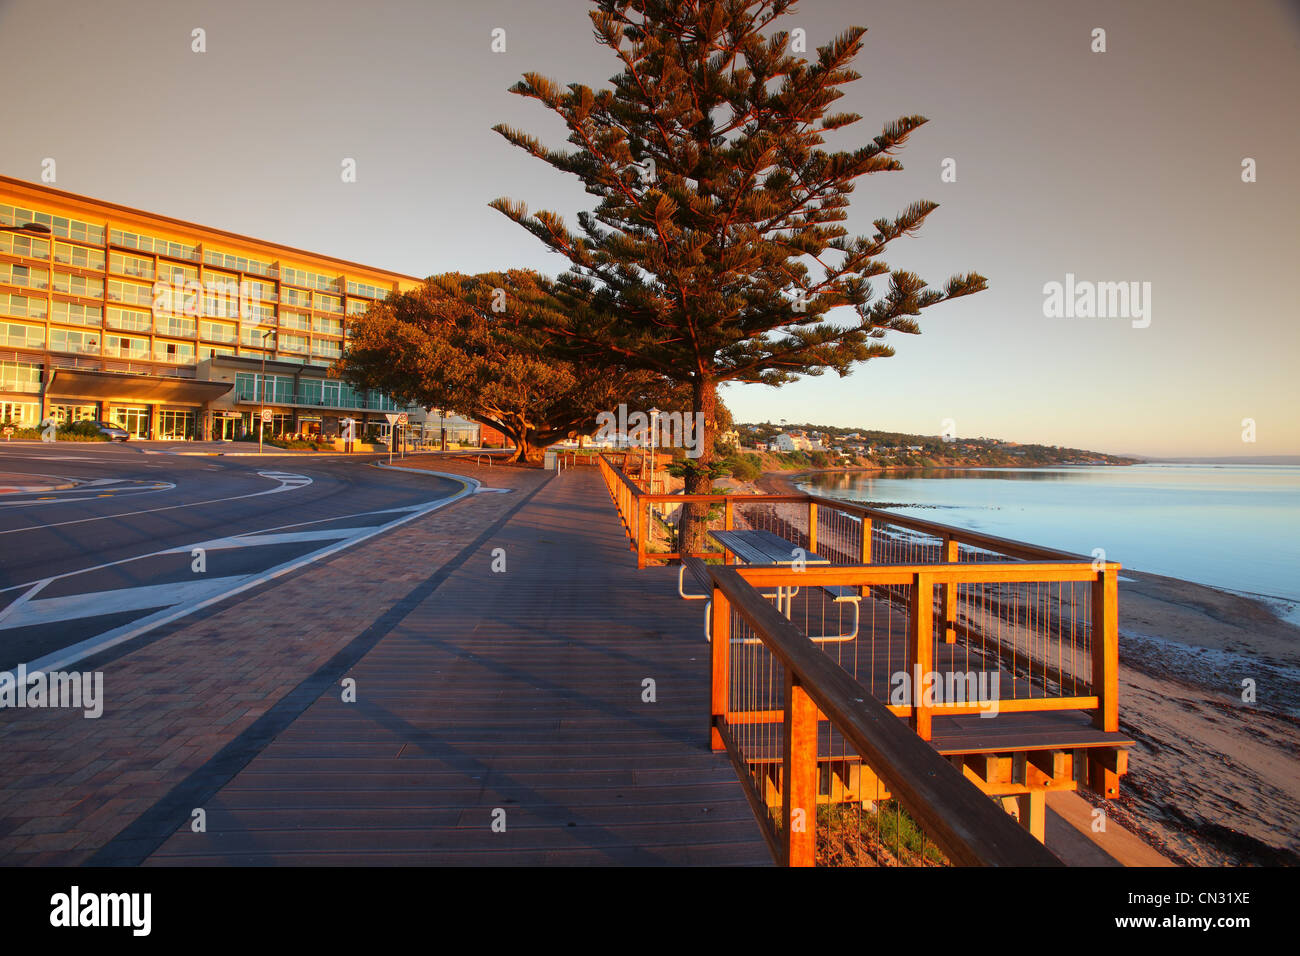 Port Lincoln foreshore - Stock Image